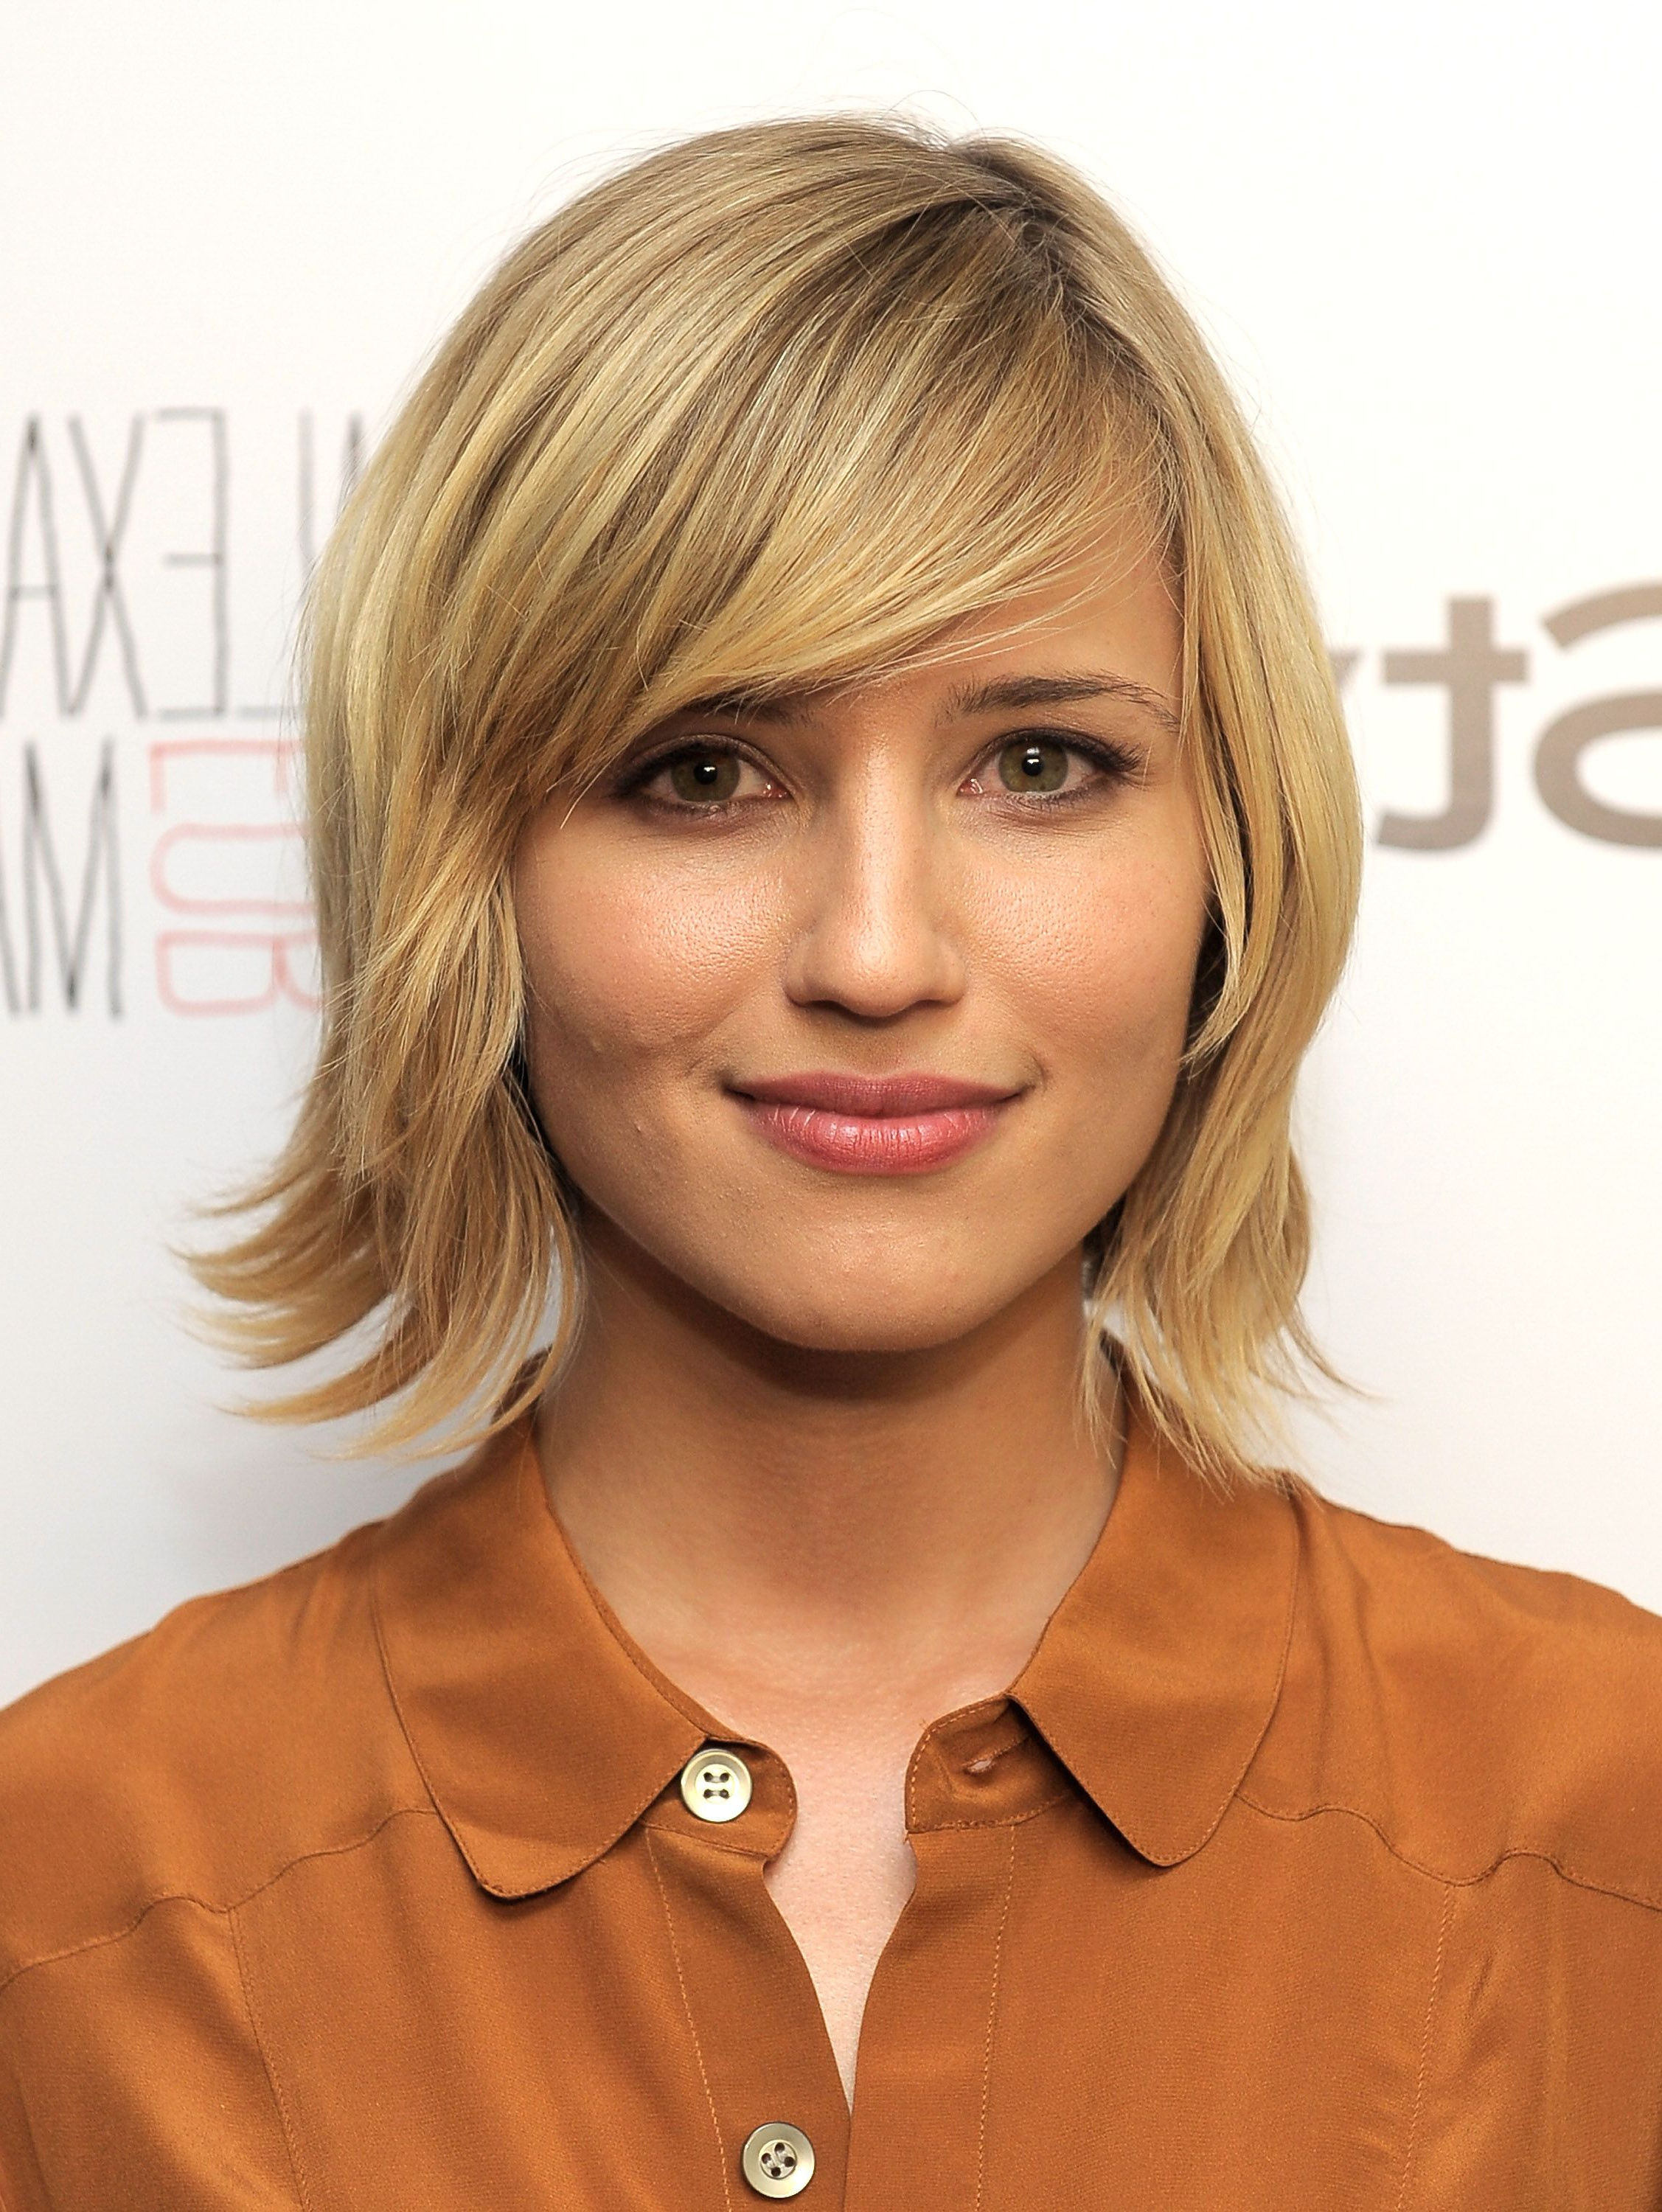 65 Best Short Hairstyles, Haircuts, And Short Hair Ideas For 2018 Pertaining To Short Medium Haircuts For Women (Gallery 14 of 25)